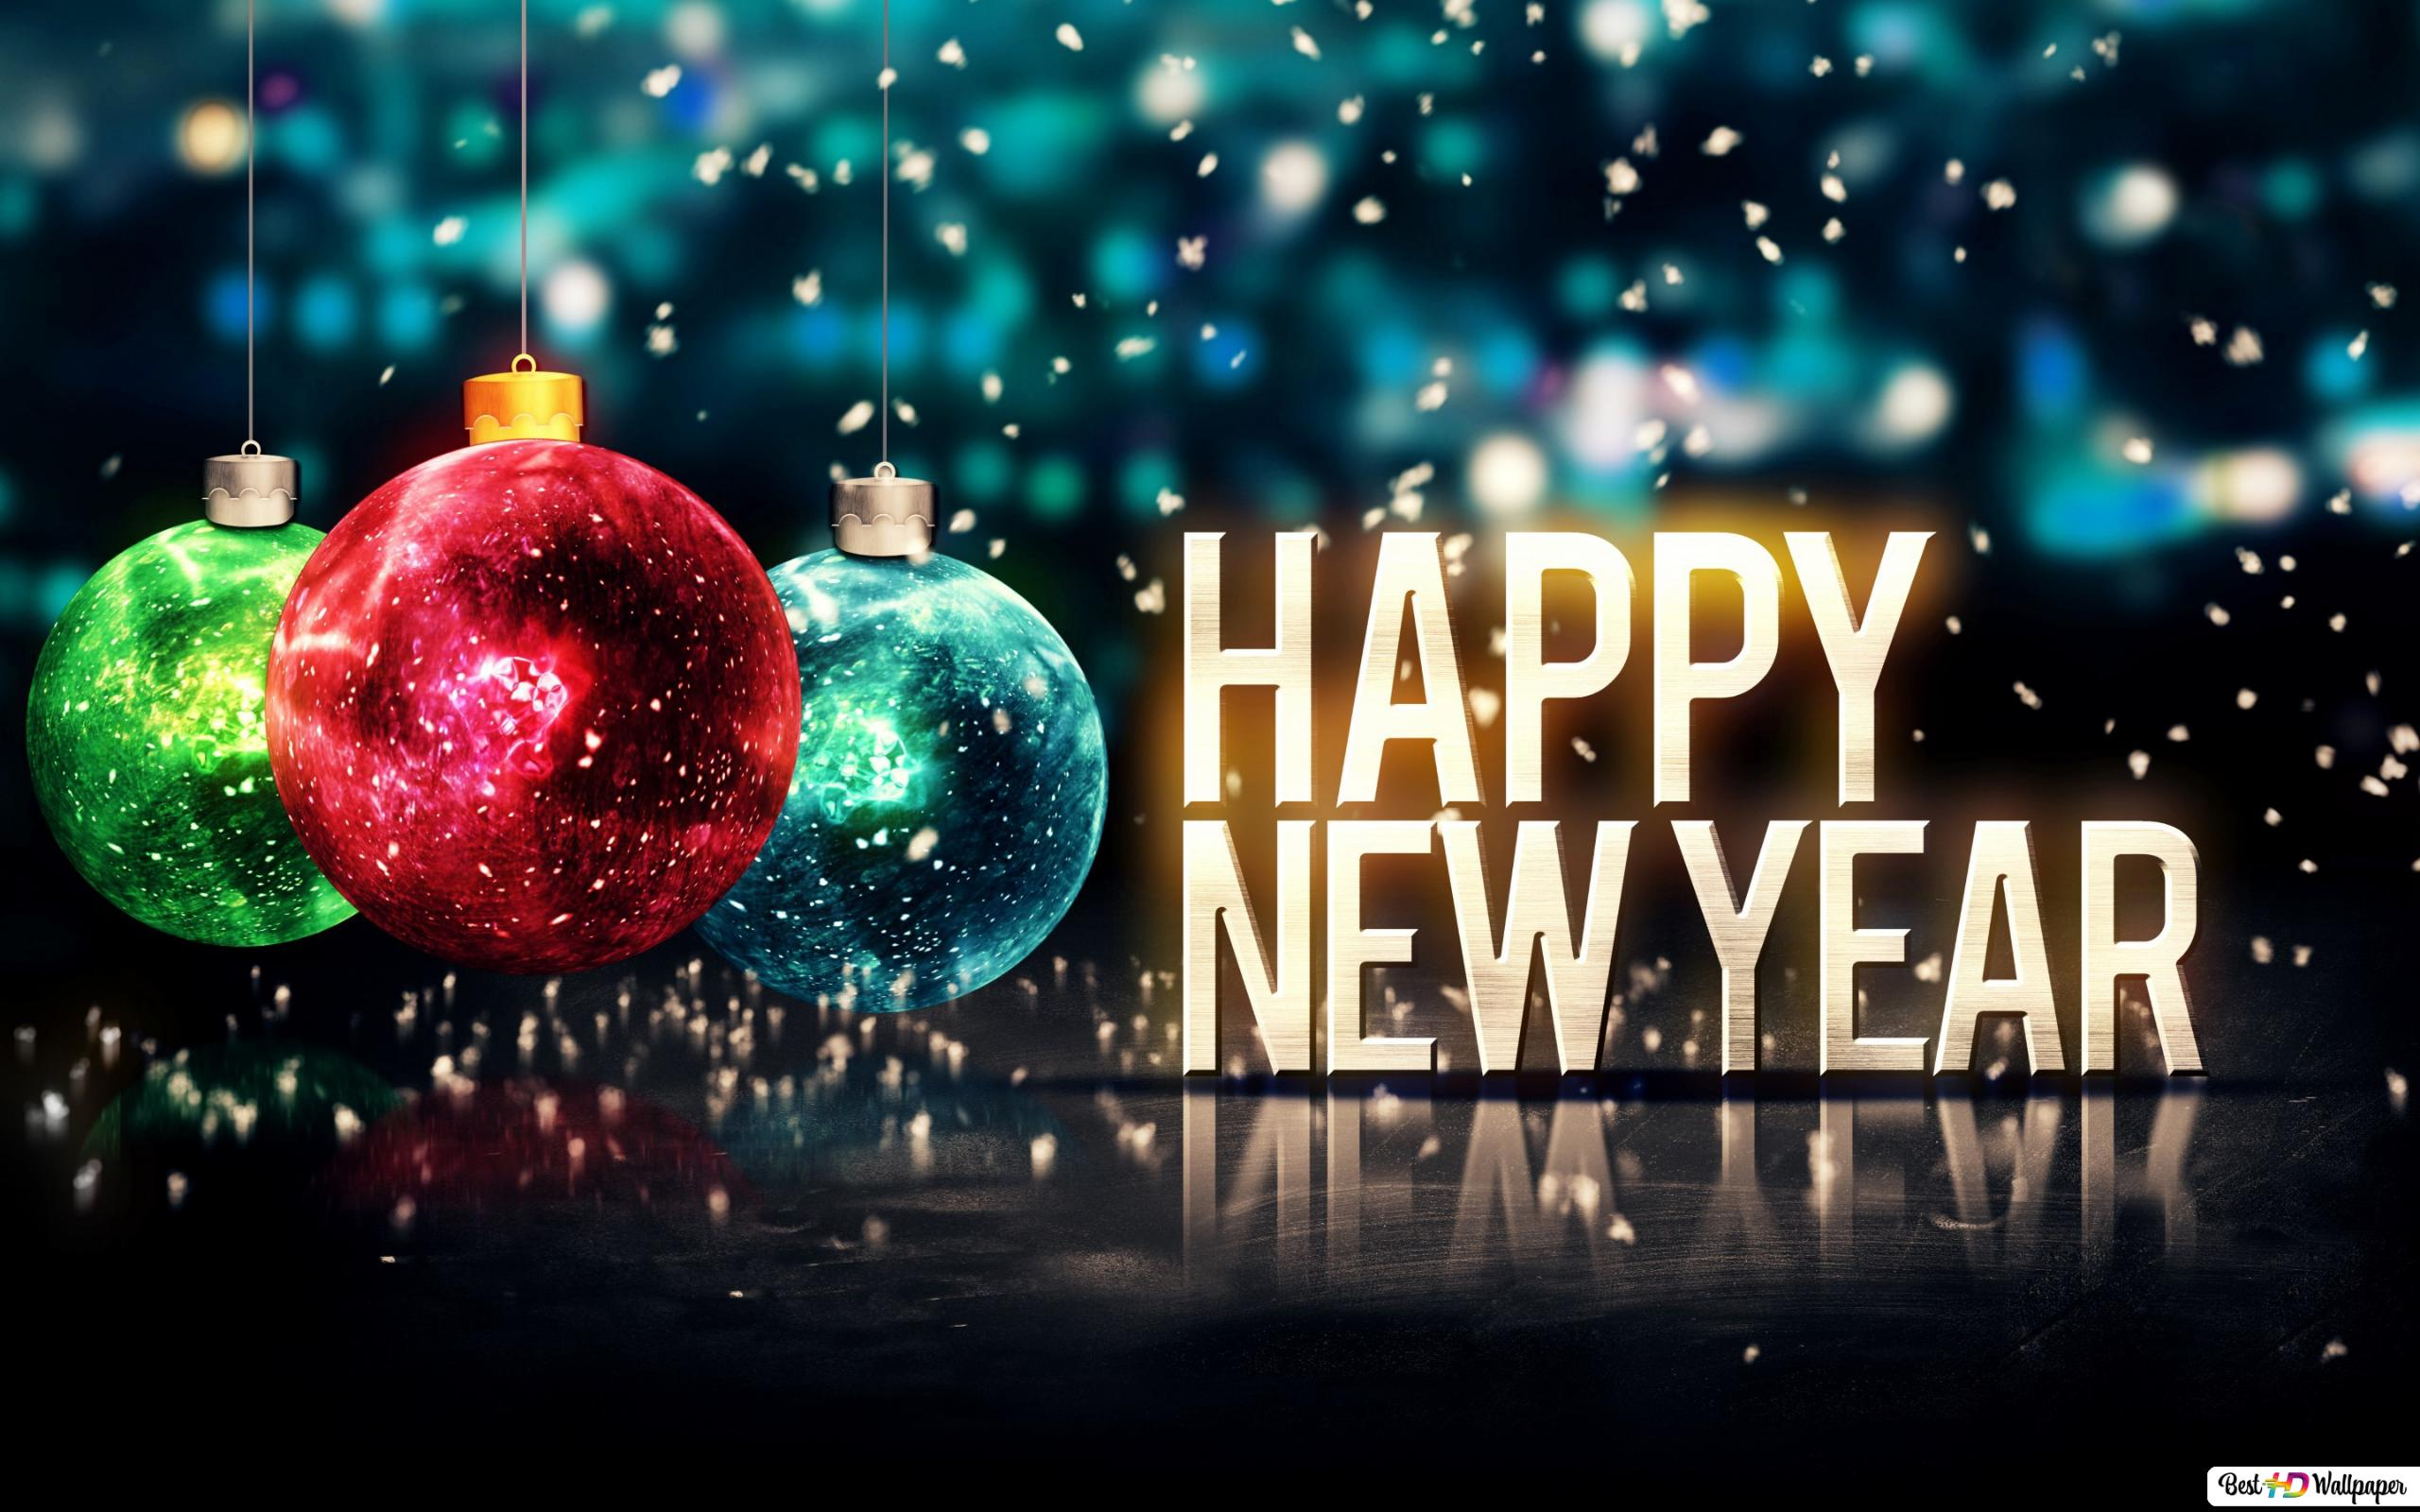 happy new year - colorful hd wallpaper download